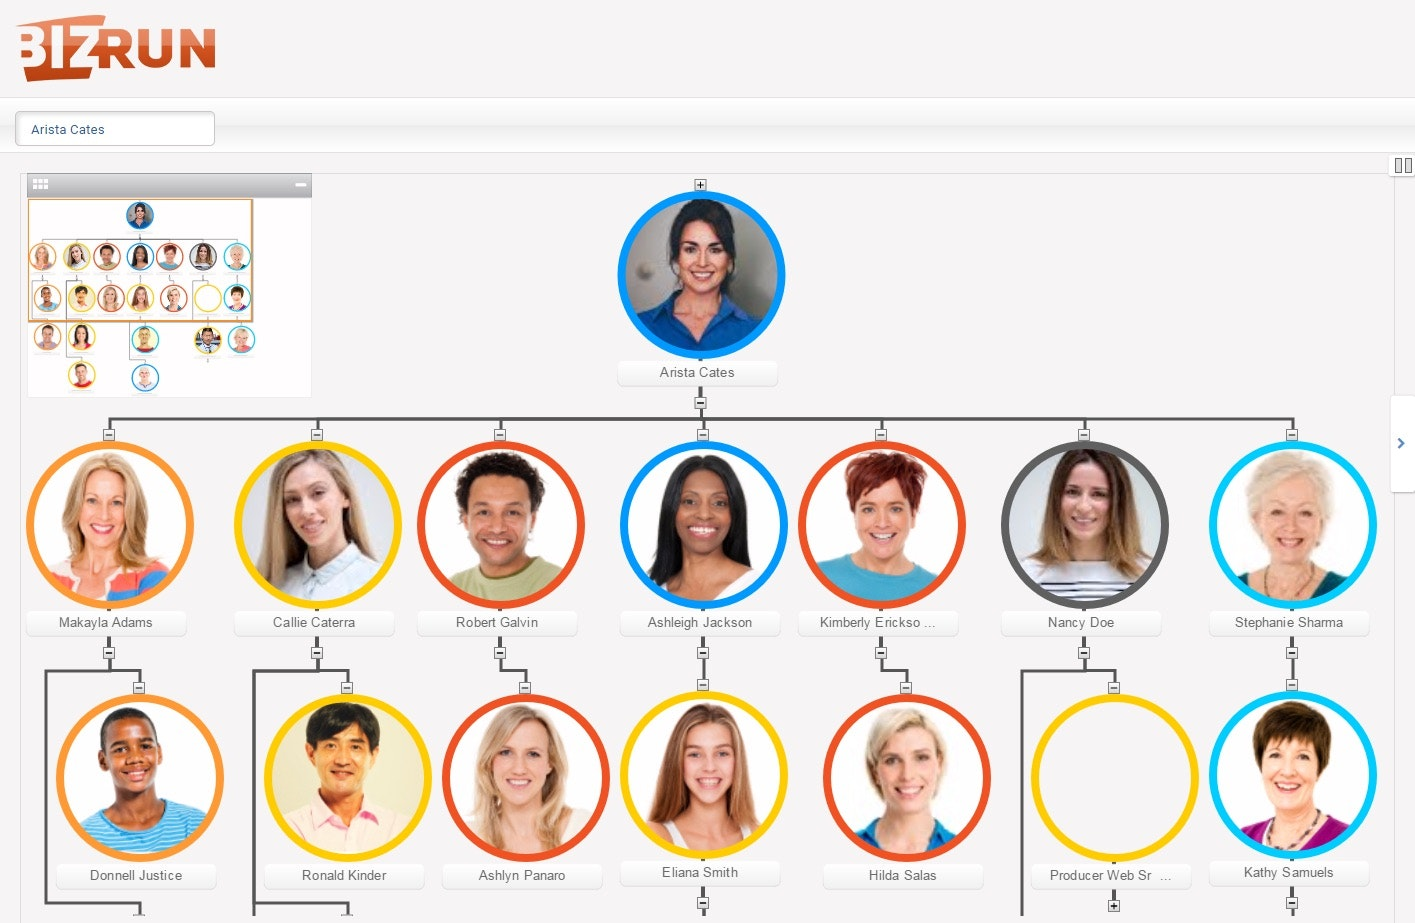 Org chart interface